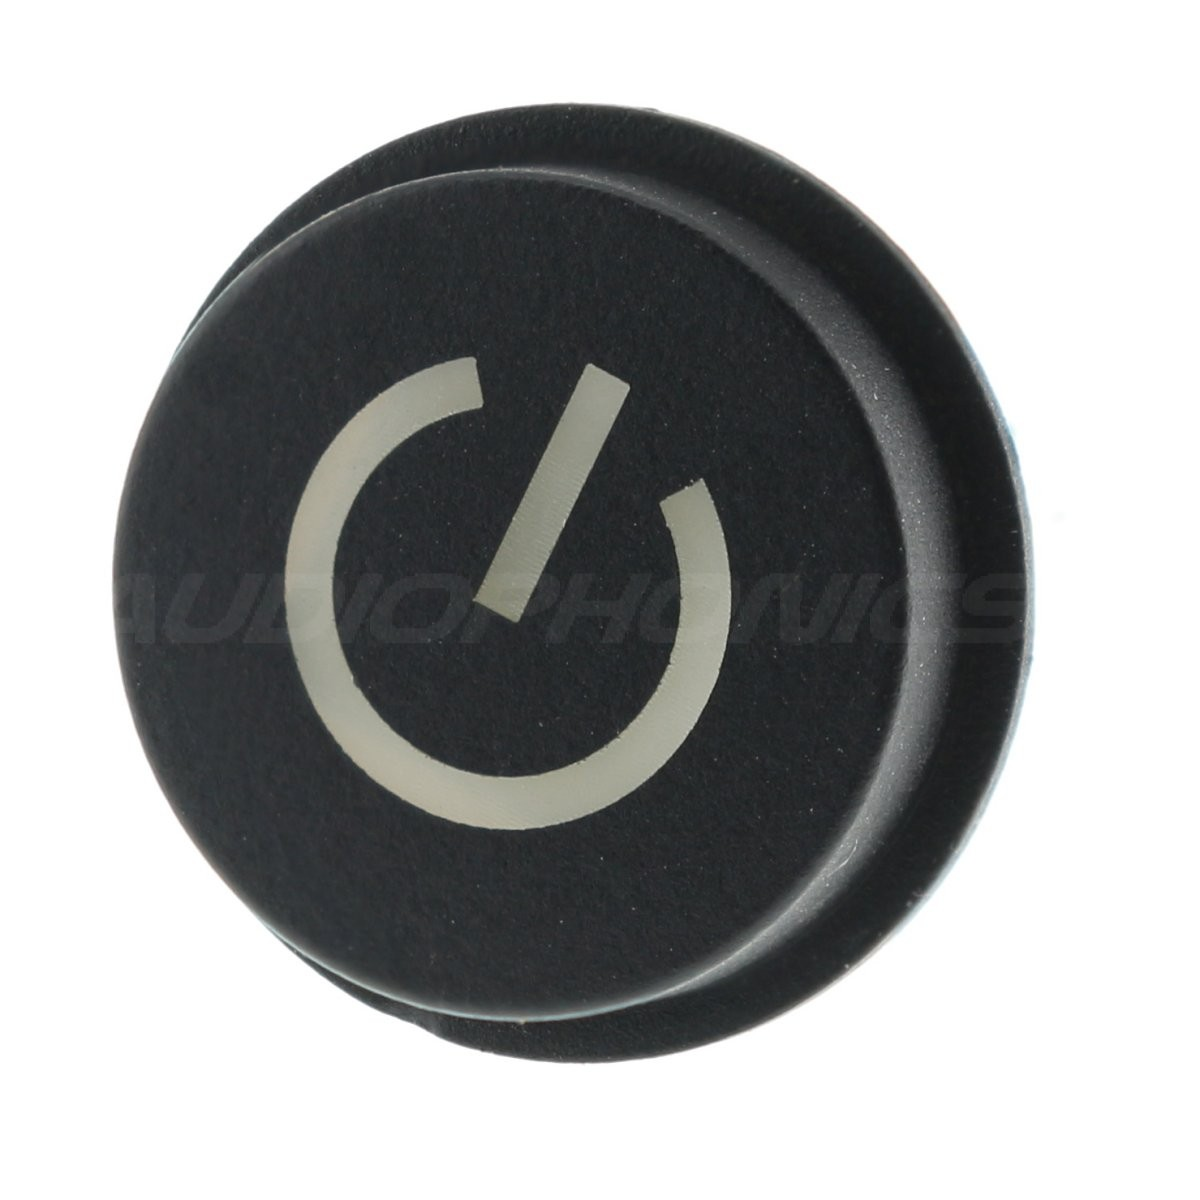 Push Button with Power Symbol white light 1NO 12V 50mA Ø15mm Black